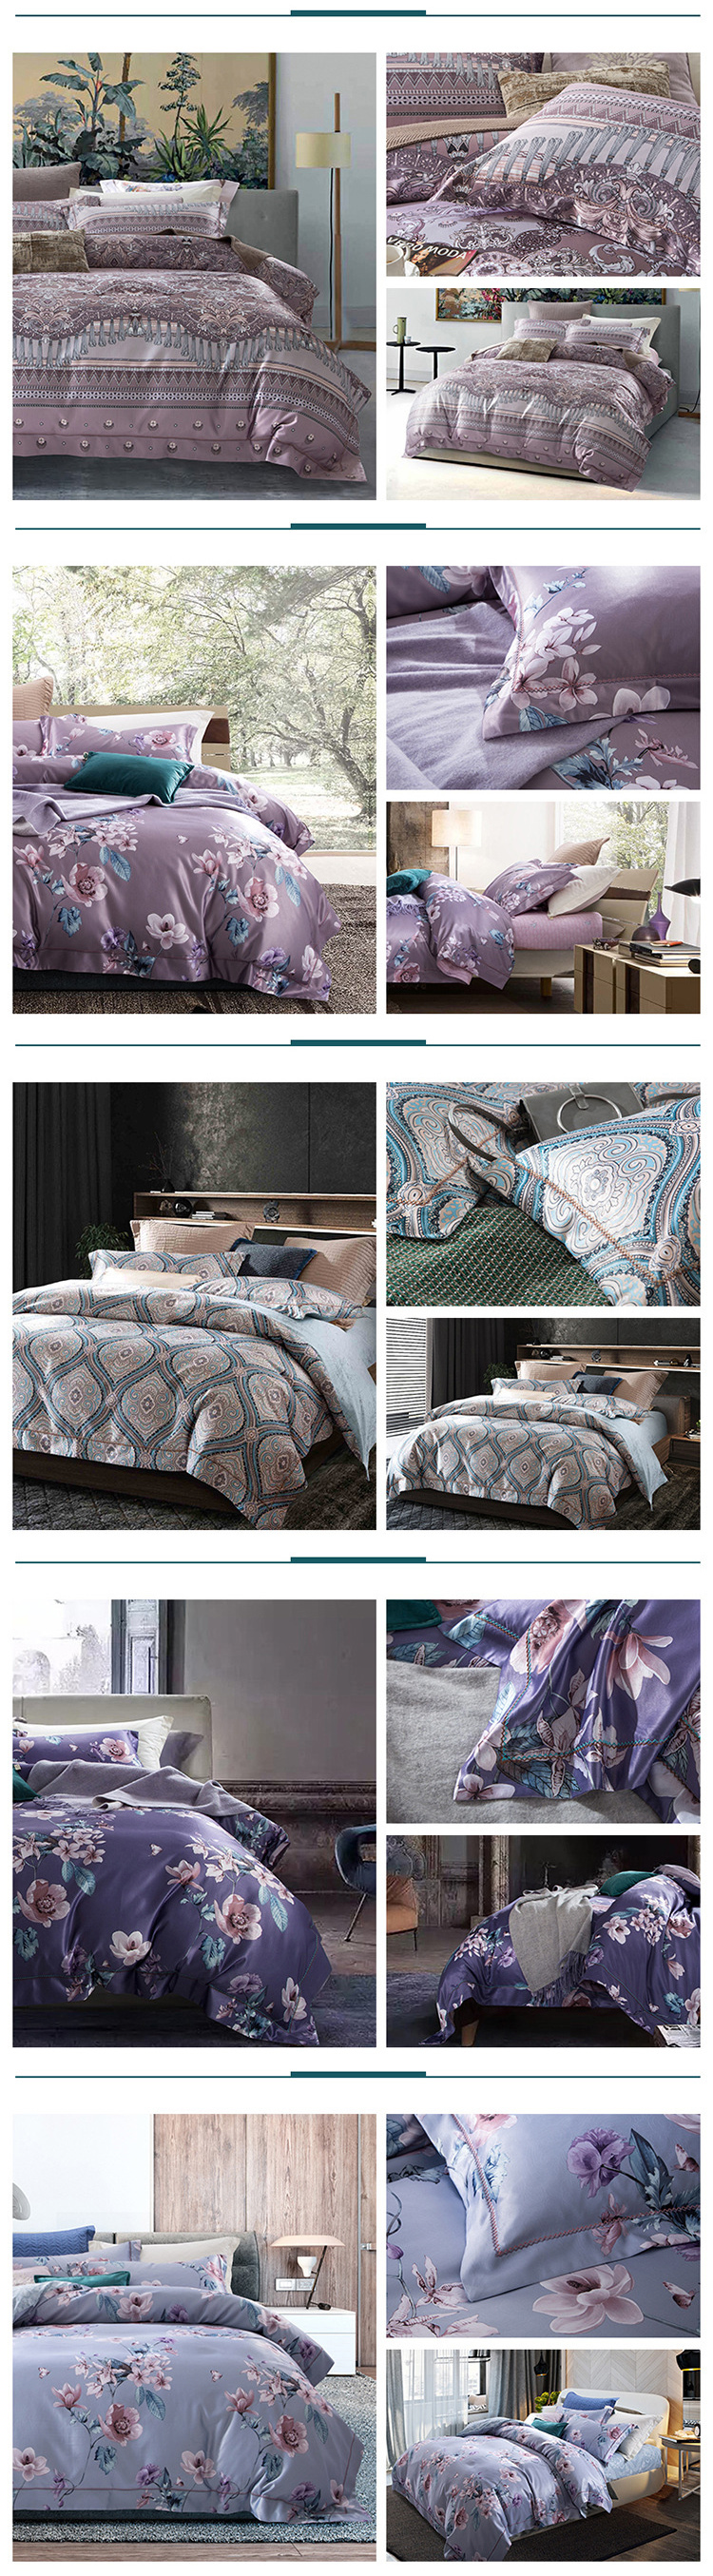 queen comforter bedding sets parure de lit adulte beddengoed Nordic retro duvet cover cotton bed sheets dekbed overtrek bed linen 05